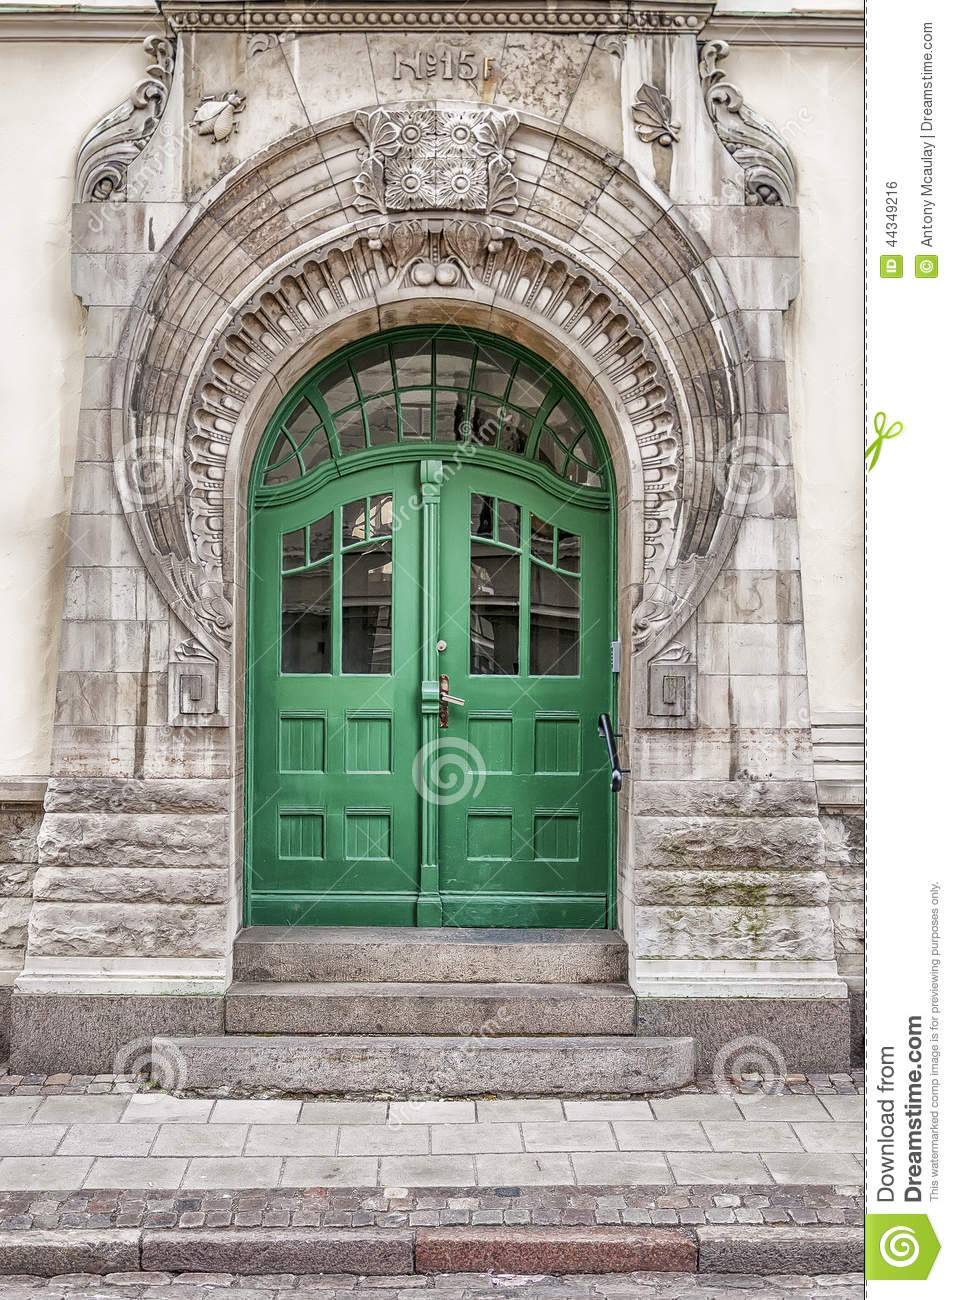 Green Door Art Nouveau Stock Photo Image 44349216